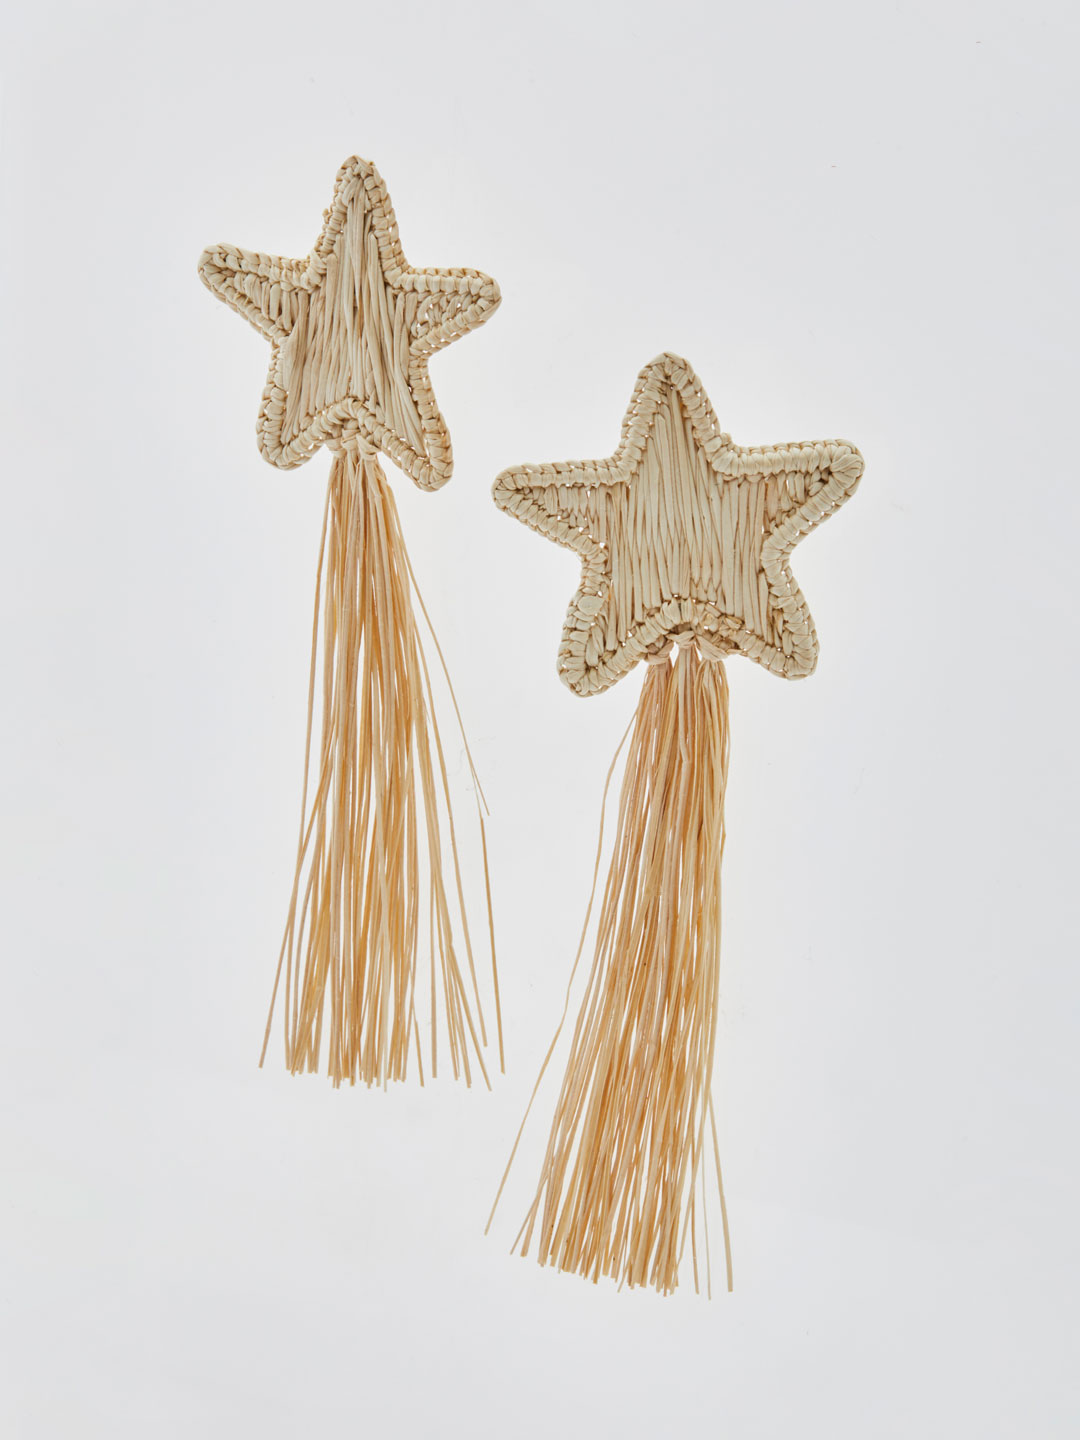 Asteria Shooting Stars Pierced Earrings - Natural